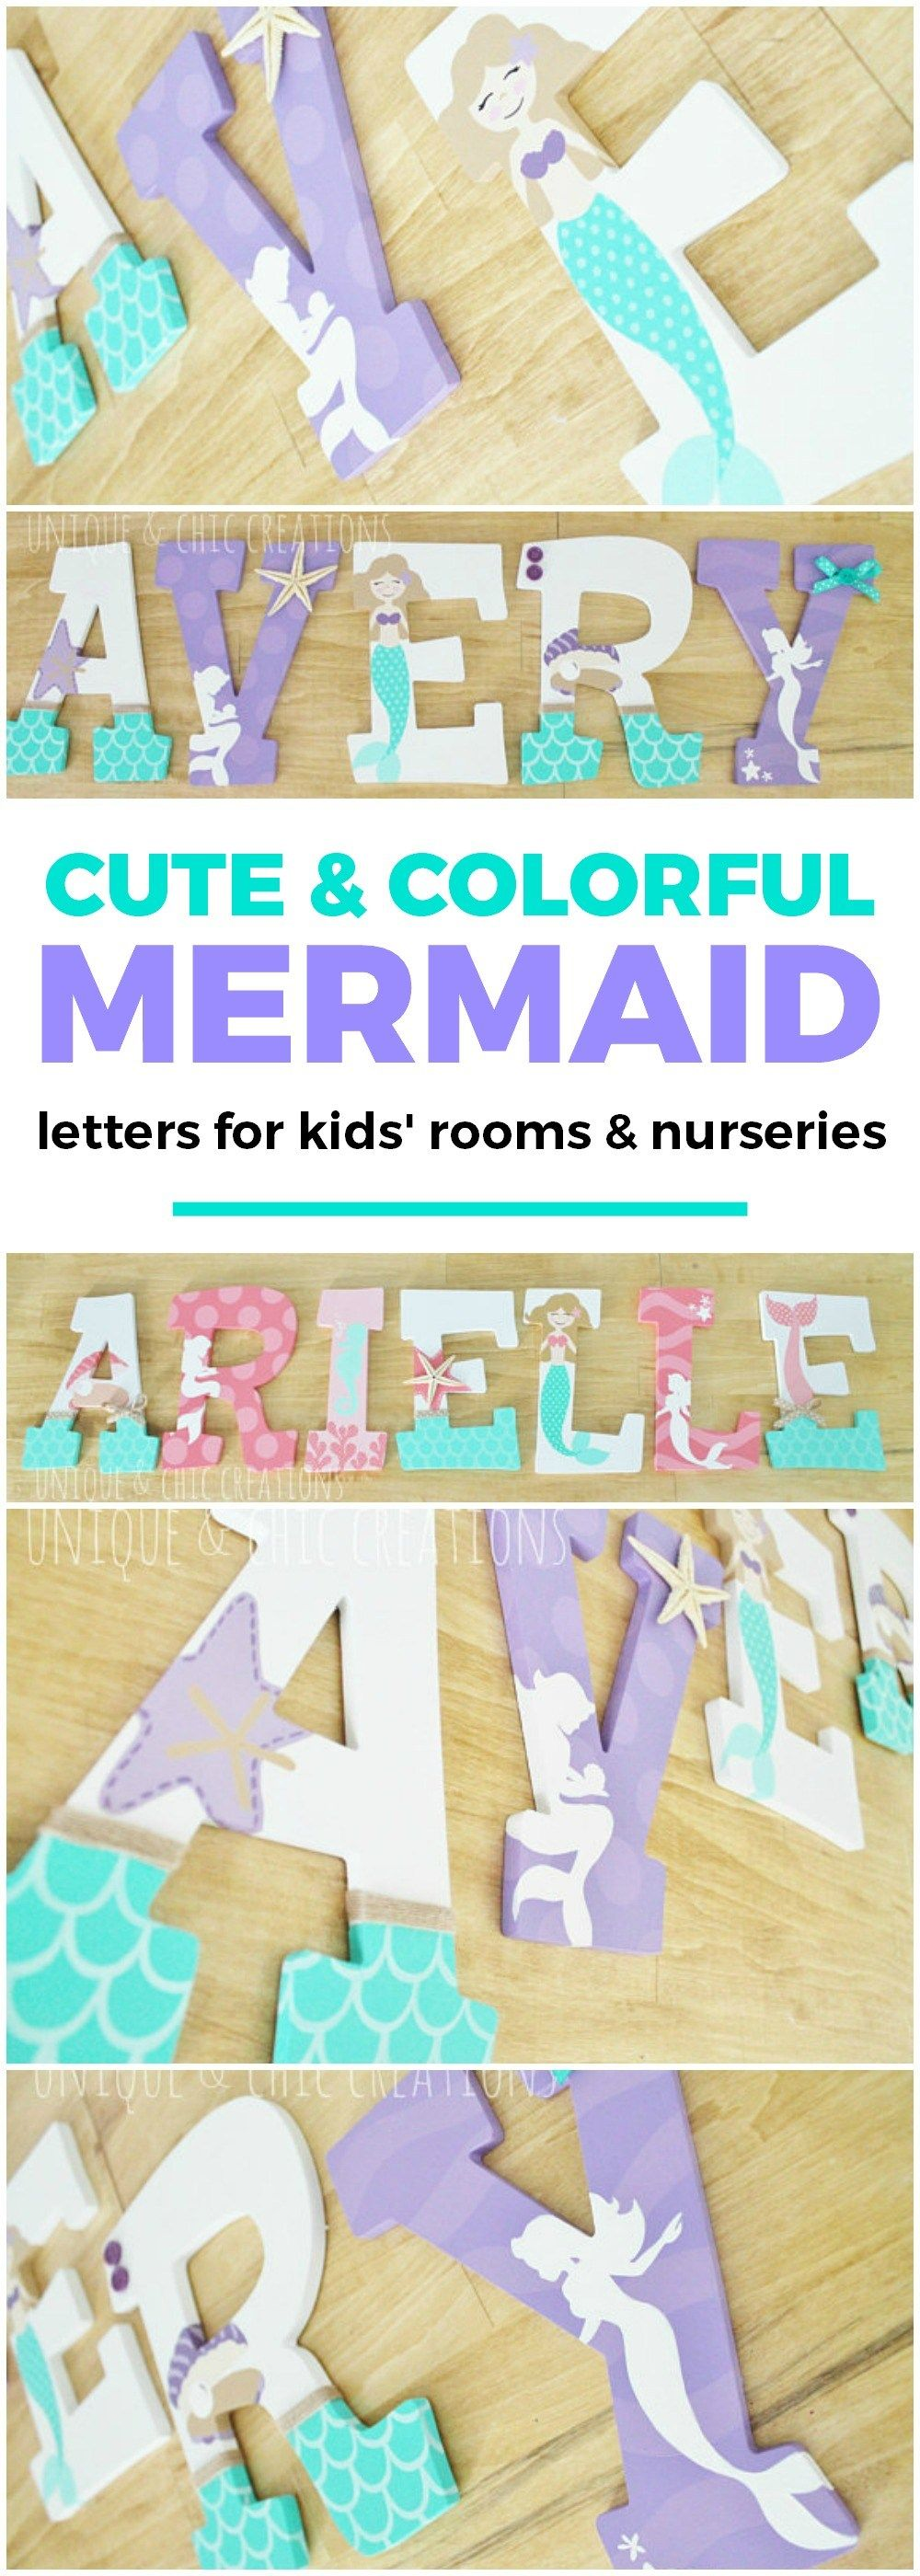 Lavender Purple and Aqua Mermaid Themed Personalized Wooden Letters for Nursery images